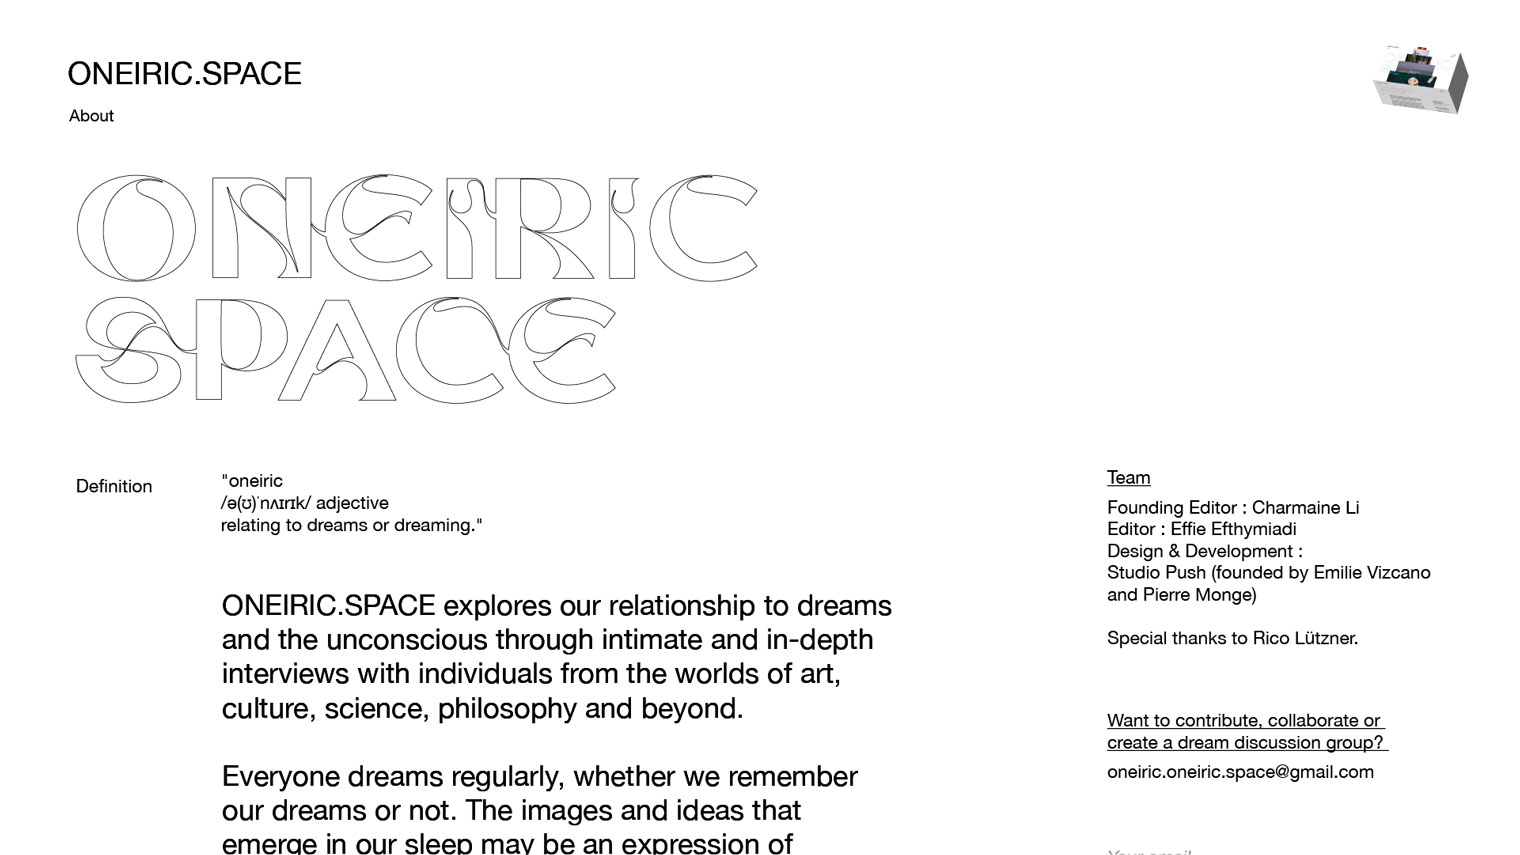 ONEIRIC SPACE - Studio Brasch